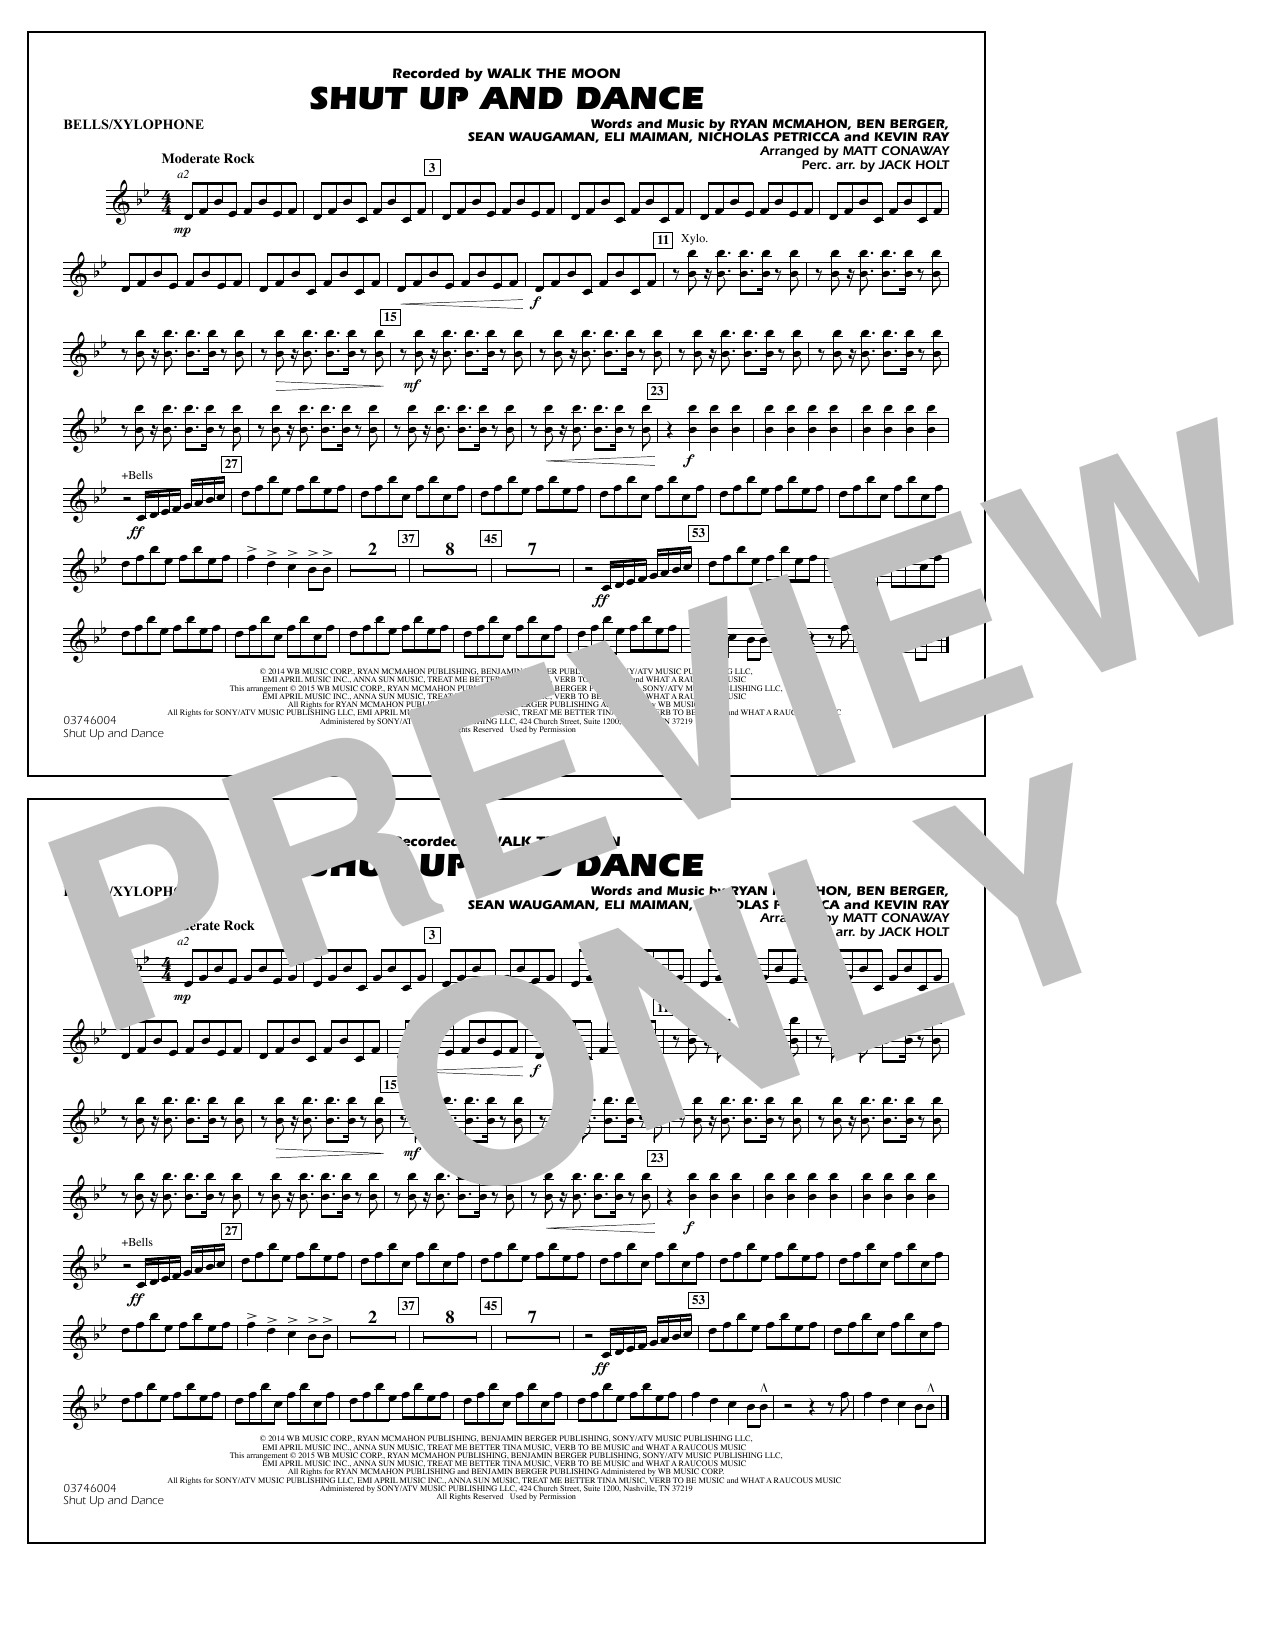 Walk The Moon Shut Up and Dance (Arr. Matt Conaway) - Bells/Xylophone sheet music notes and chords. Download Printable PDF.